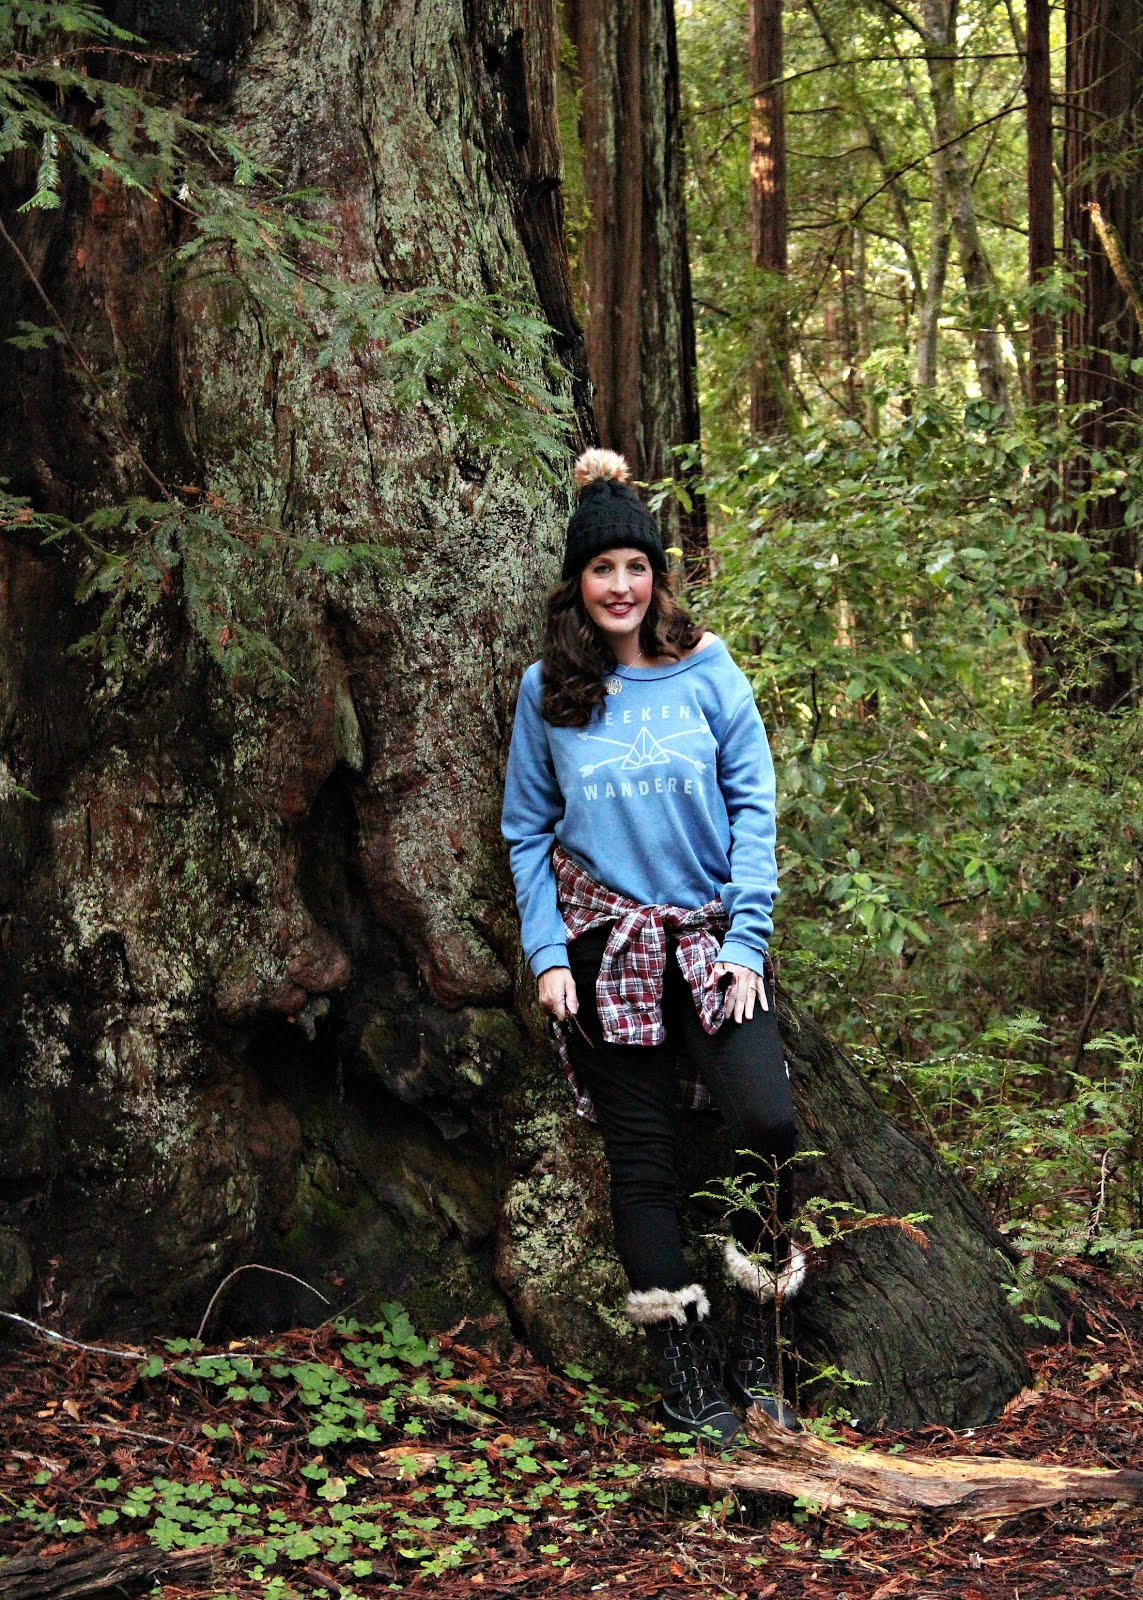 Weekend Wanderer in the Redwoods